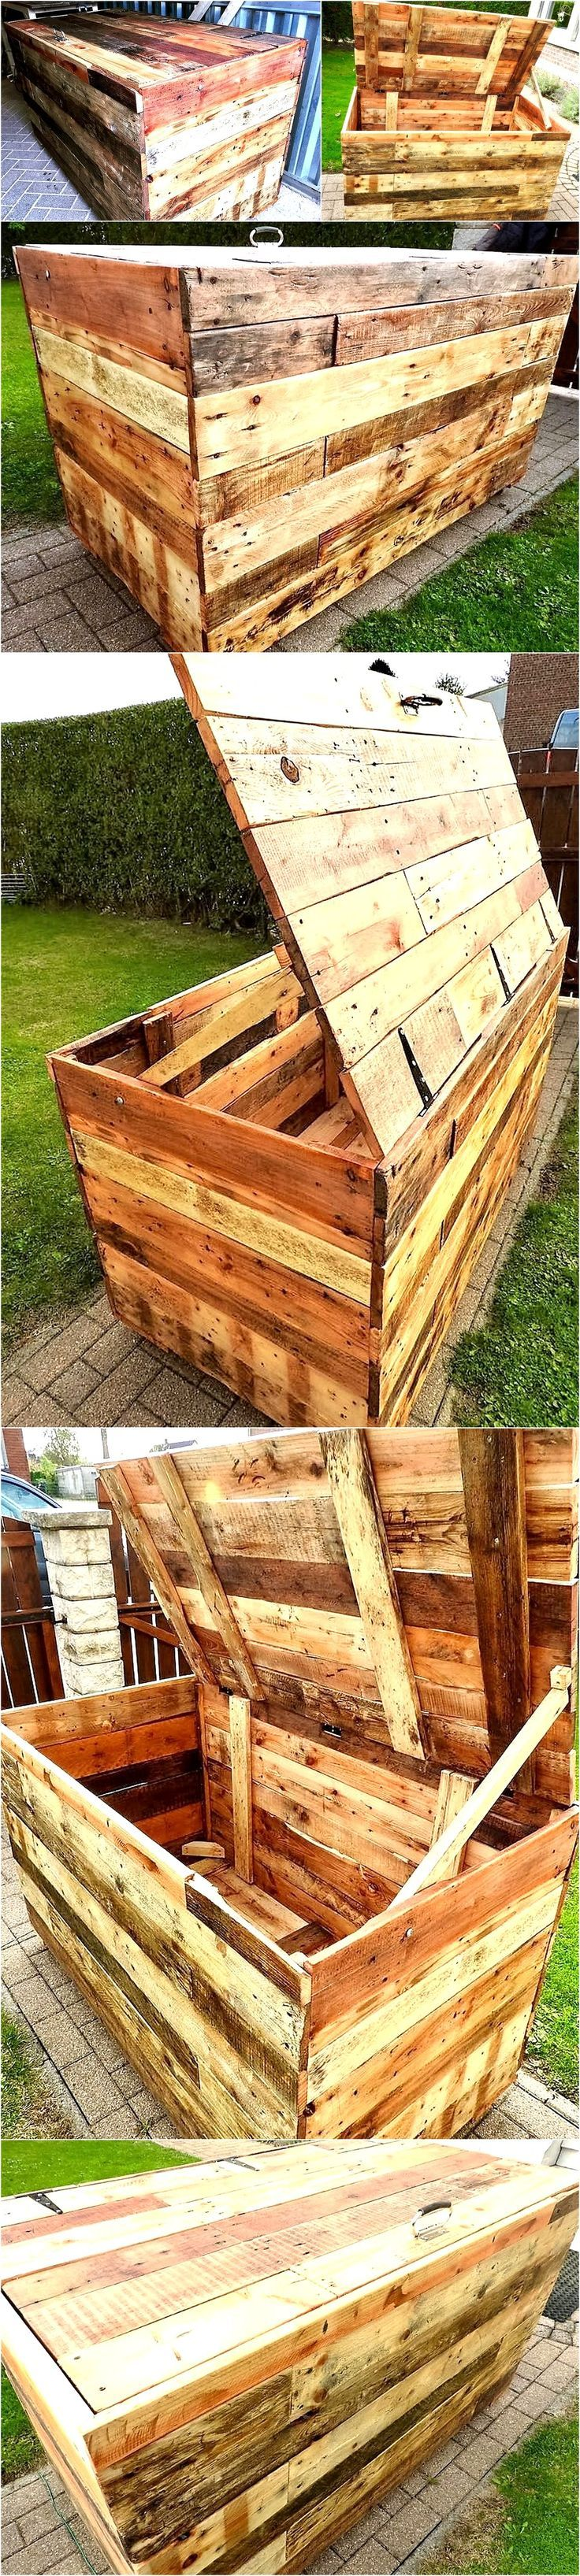 This has become so crucial to find some additional storage hacks where our lives have shrunk to mere tiny apartments and we are in dire need of these storage places. In this scenario this wooden pallet grand trunk or chest would be of great help.